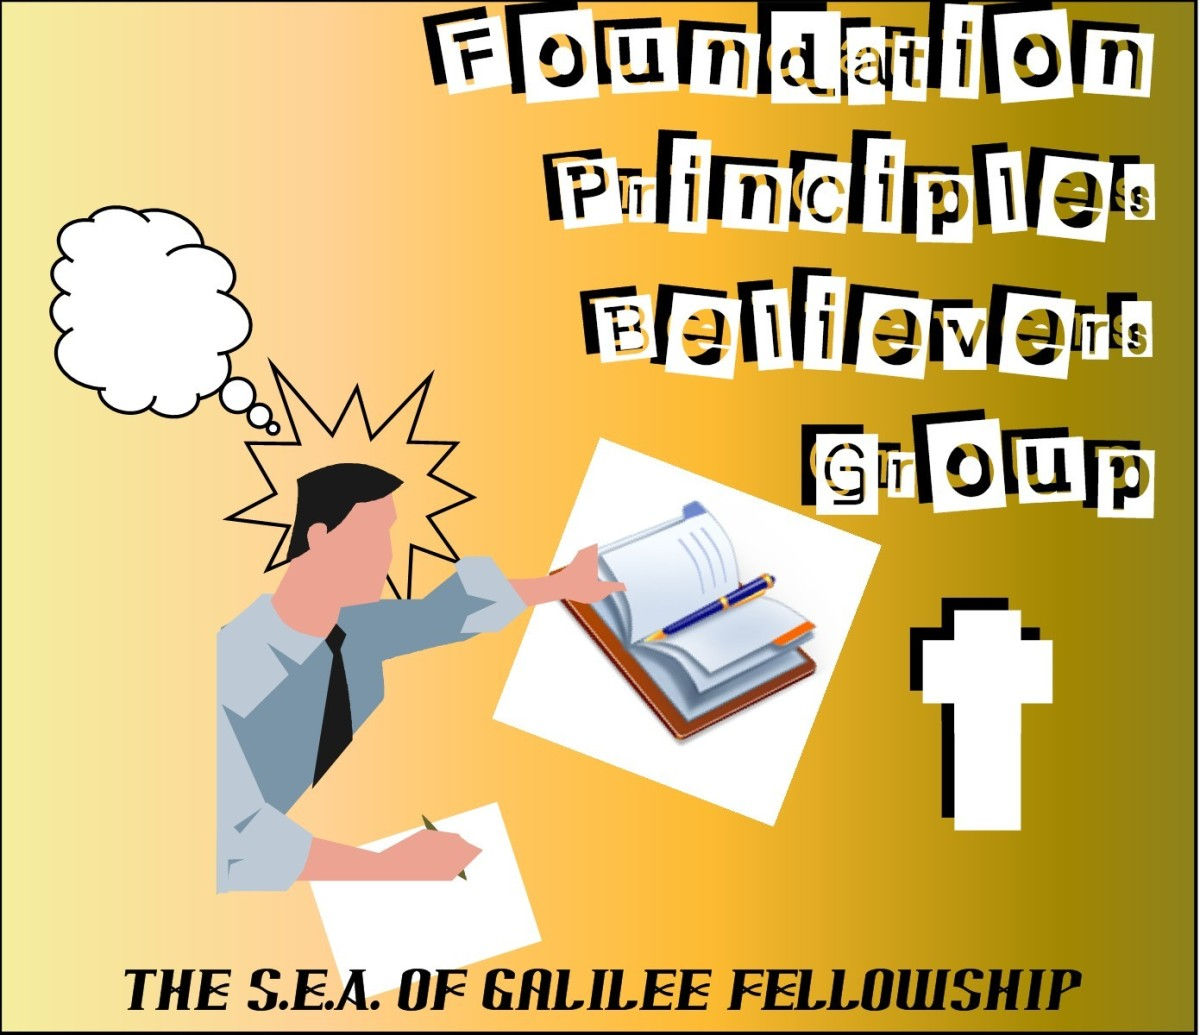 FOundation Principles 12 Step Group